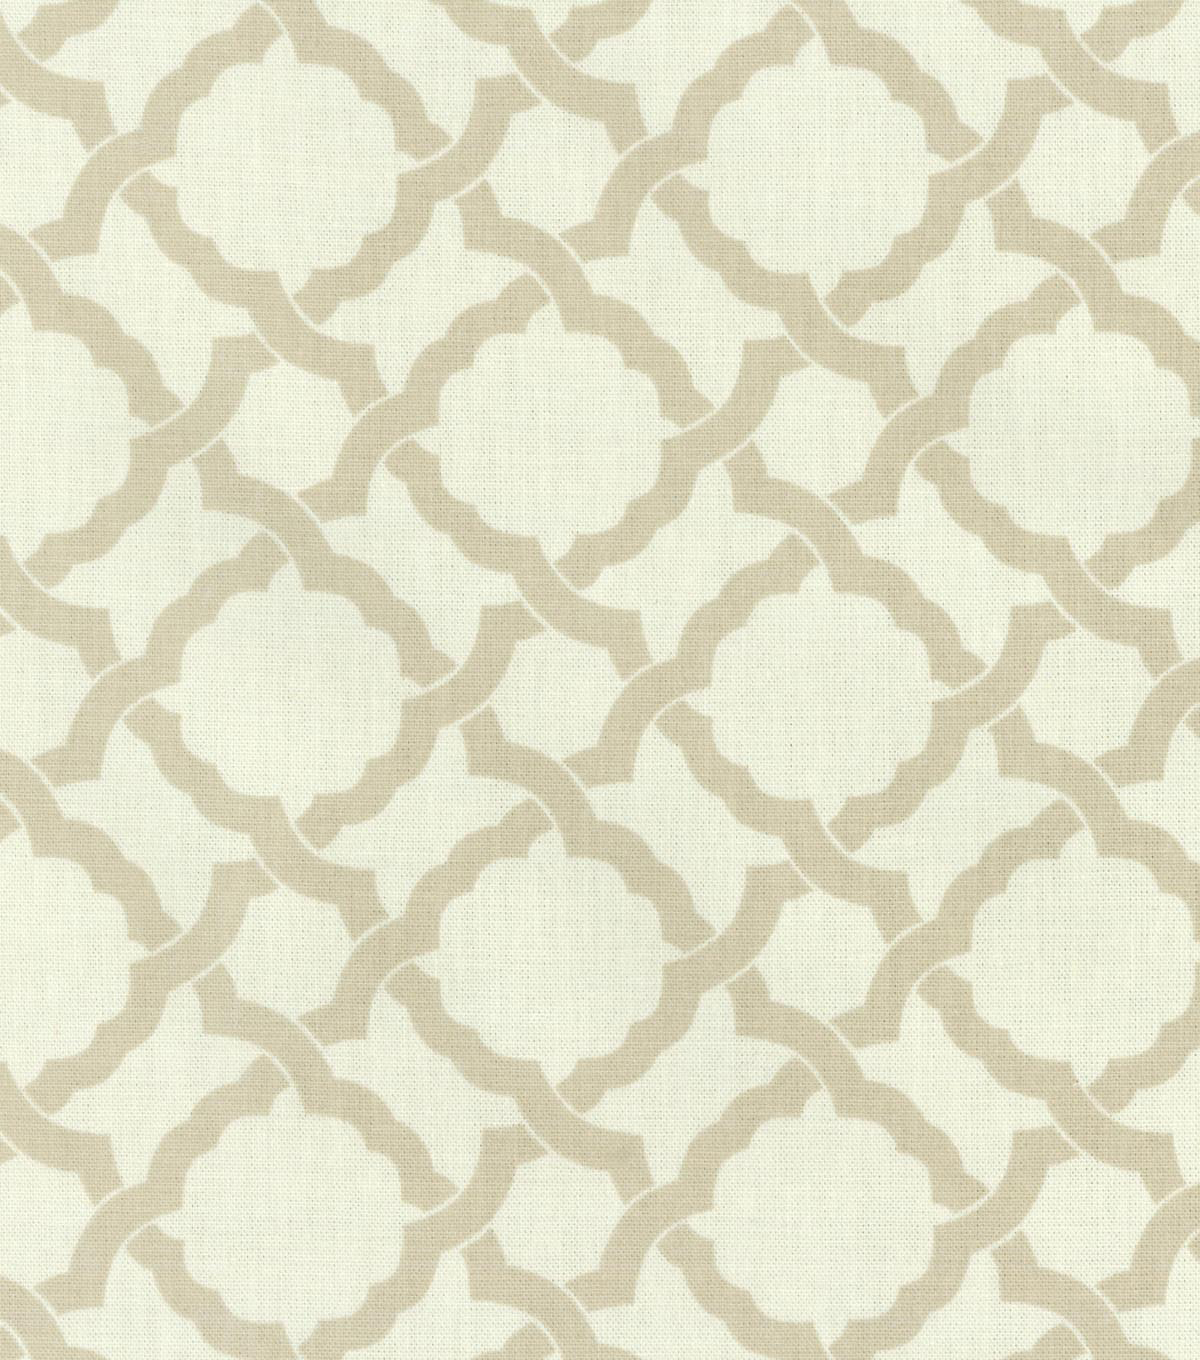 Waverly Upholstery Fabric-Kent Crossing/Linen